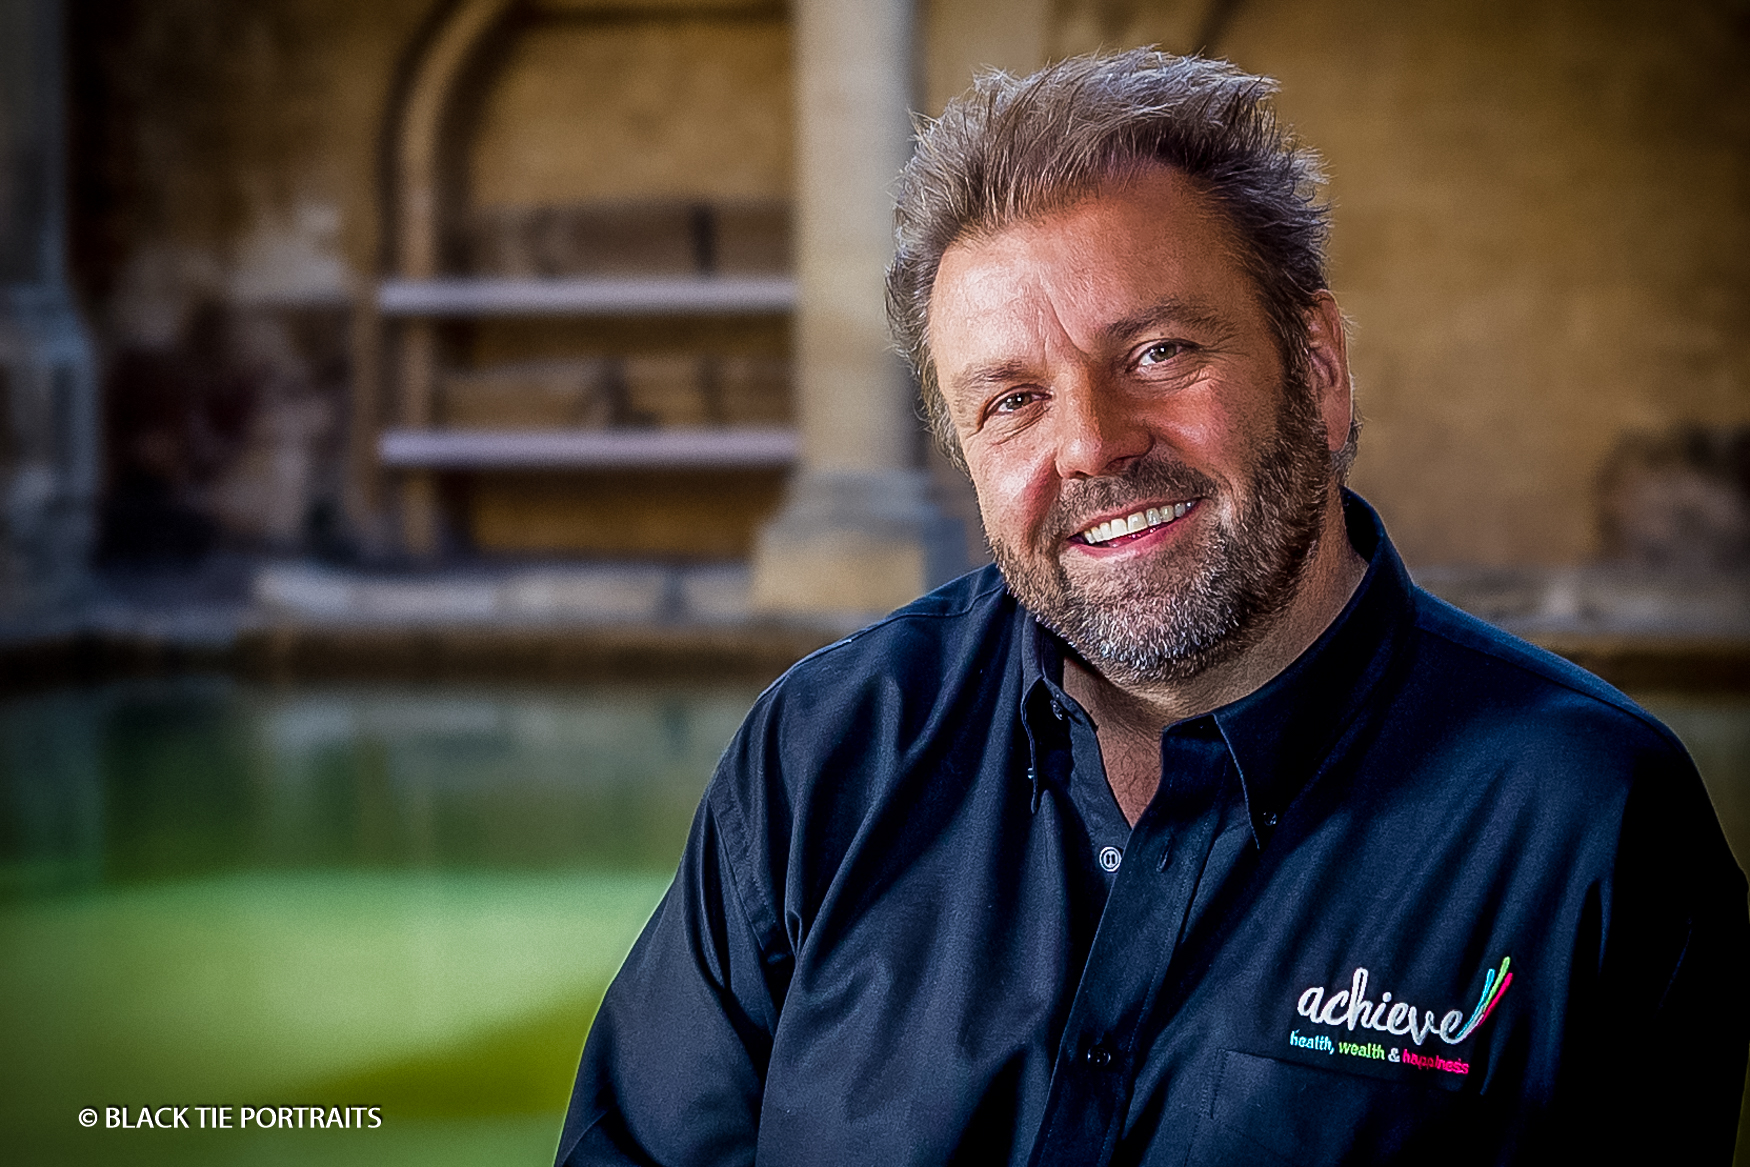 Martin Roberts, TV personality & organiser of Achieve, the UK's 1st Health, Wealth and Happiness Expo